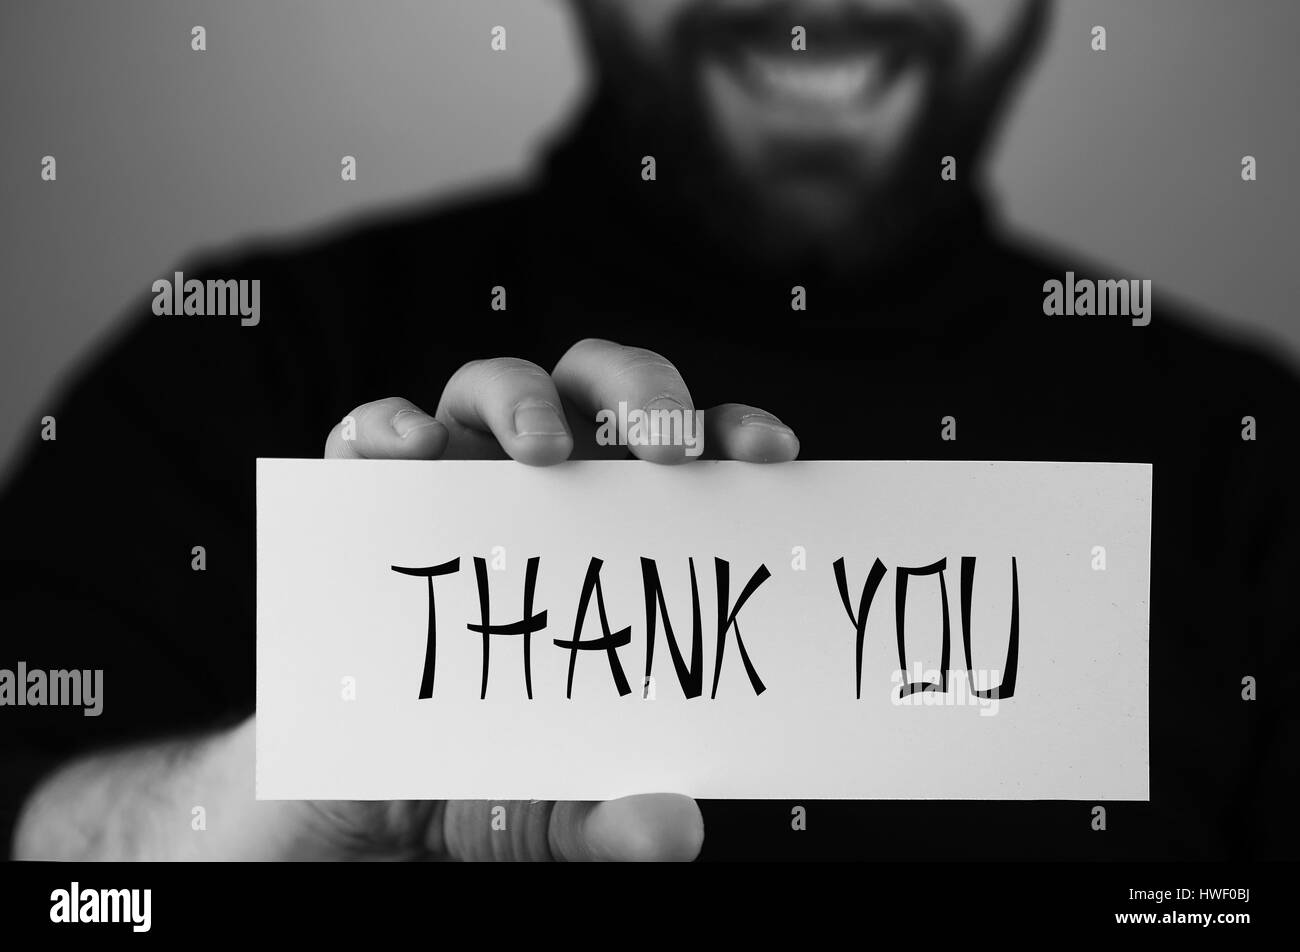 thank you on small white piece of paper in his hand man monochro - Stock Image